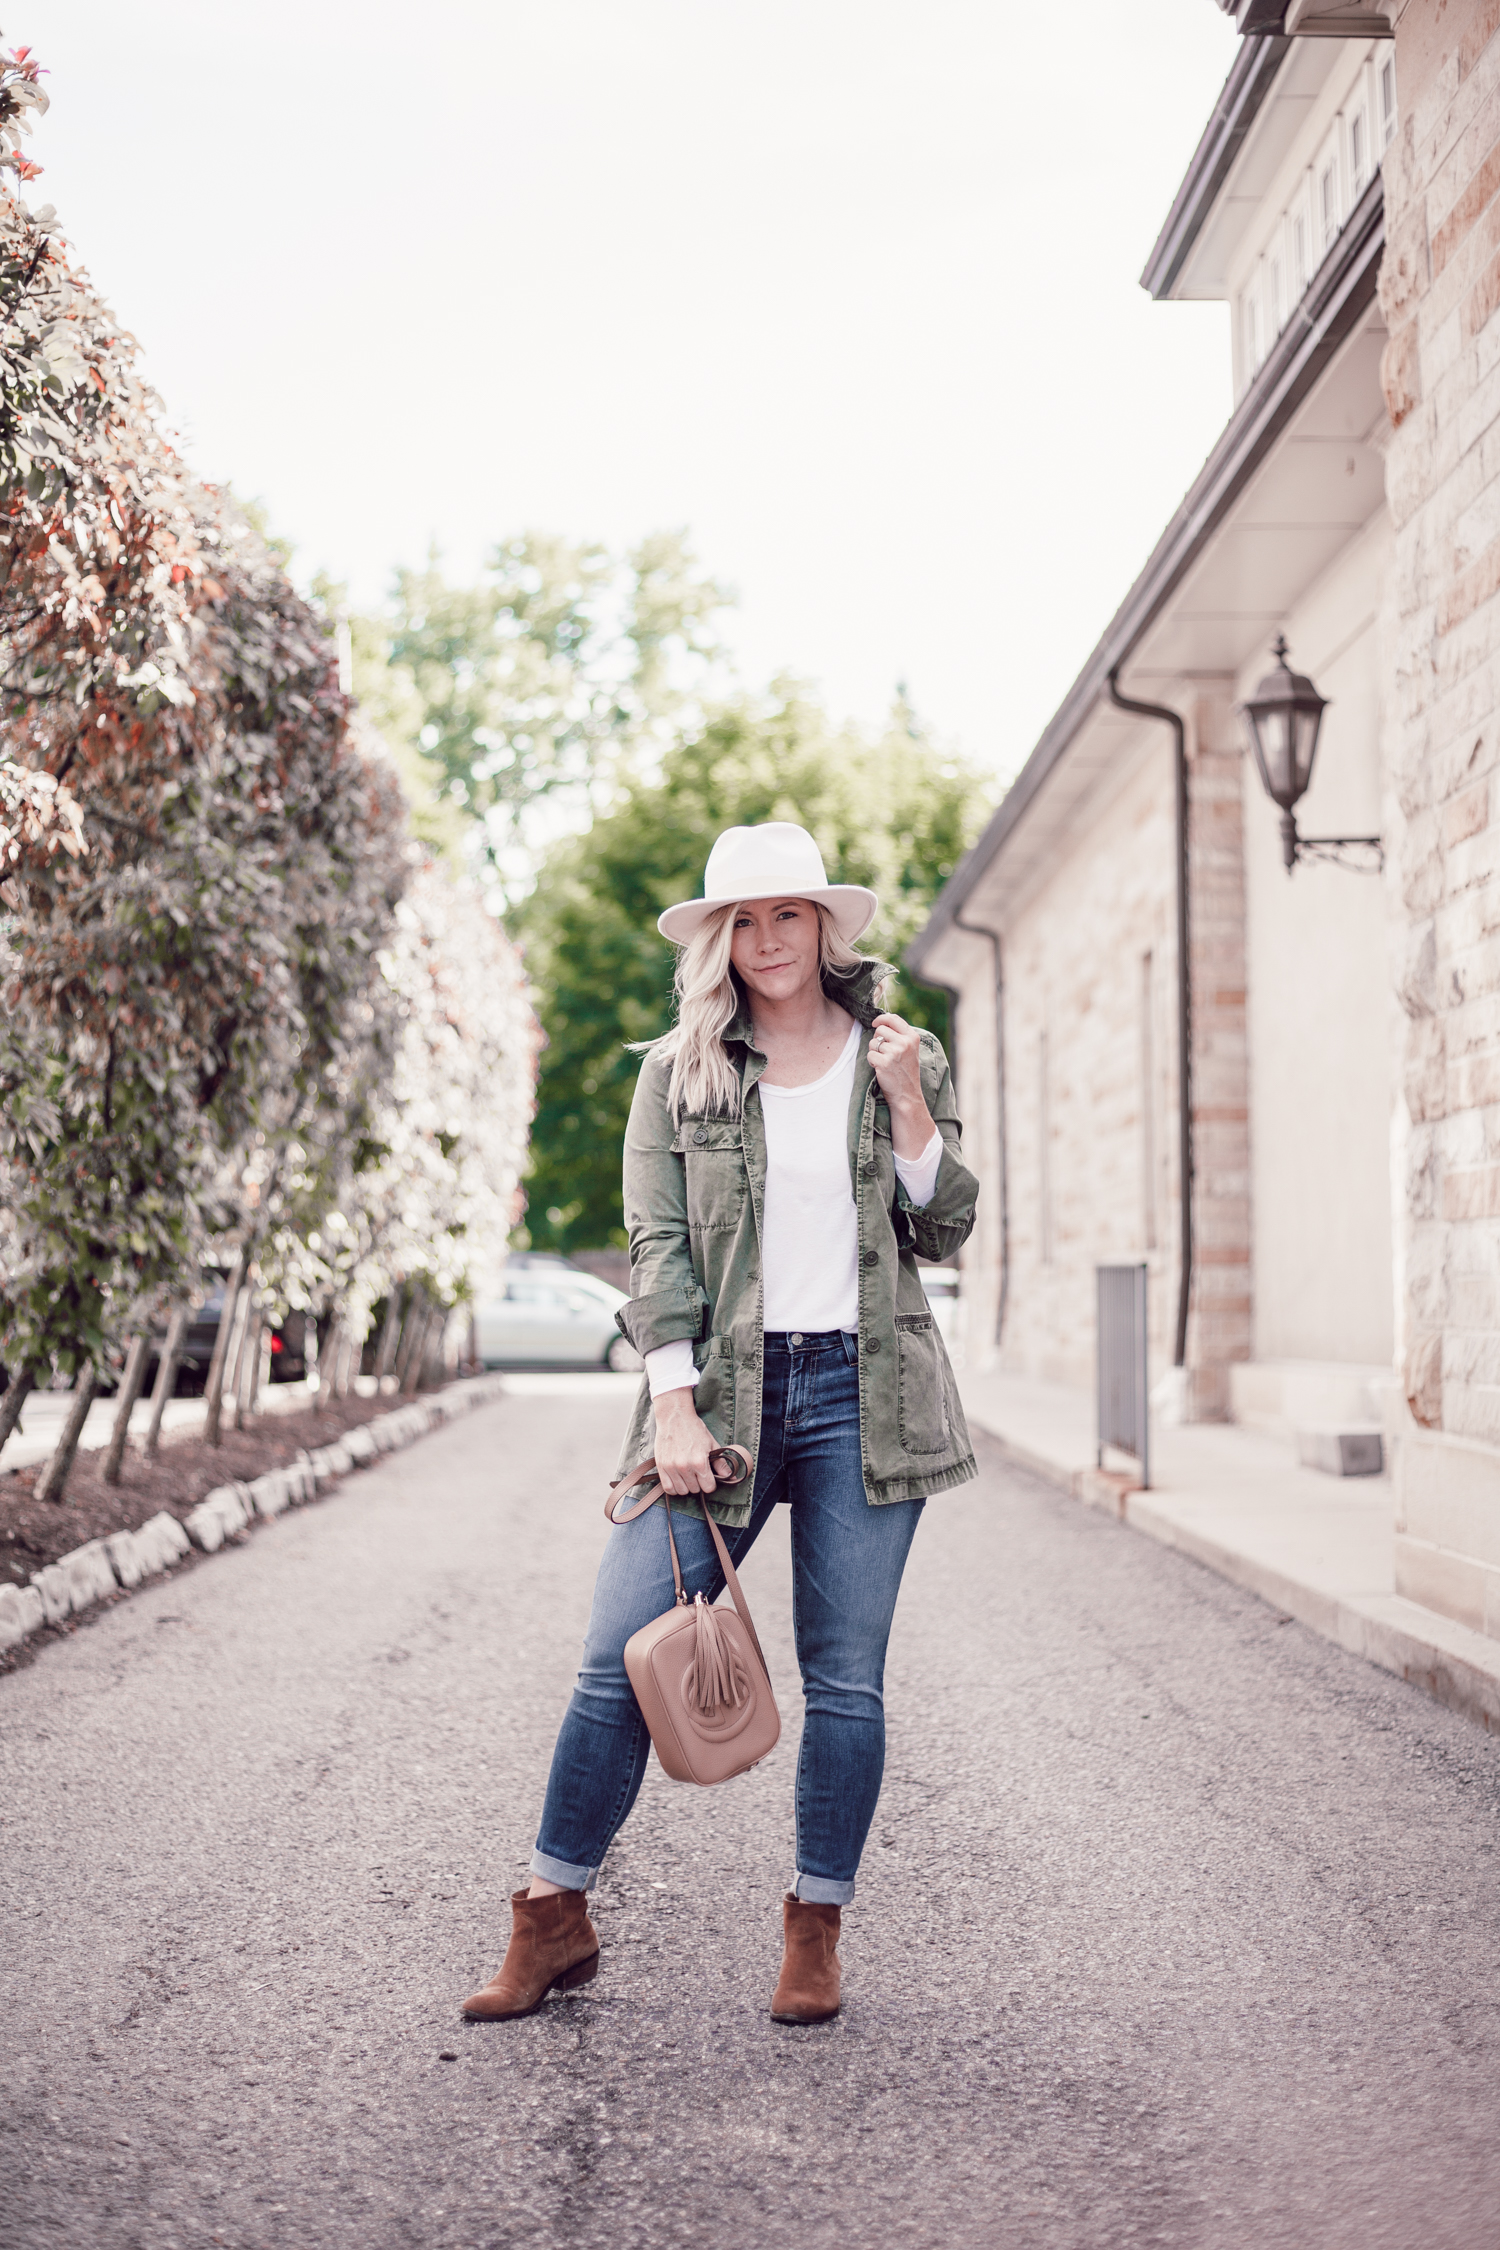 Fall Preview: My Favorite Fall Staples on Sale Now